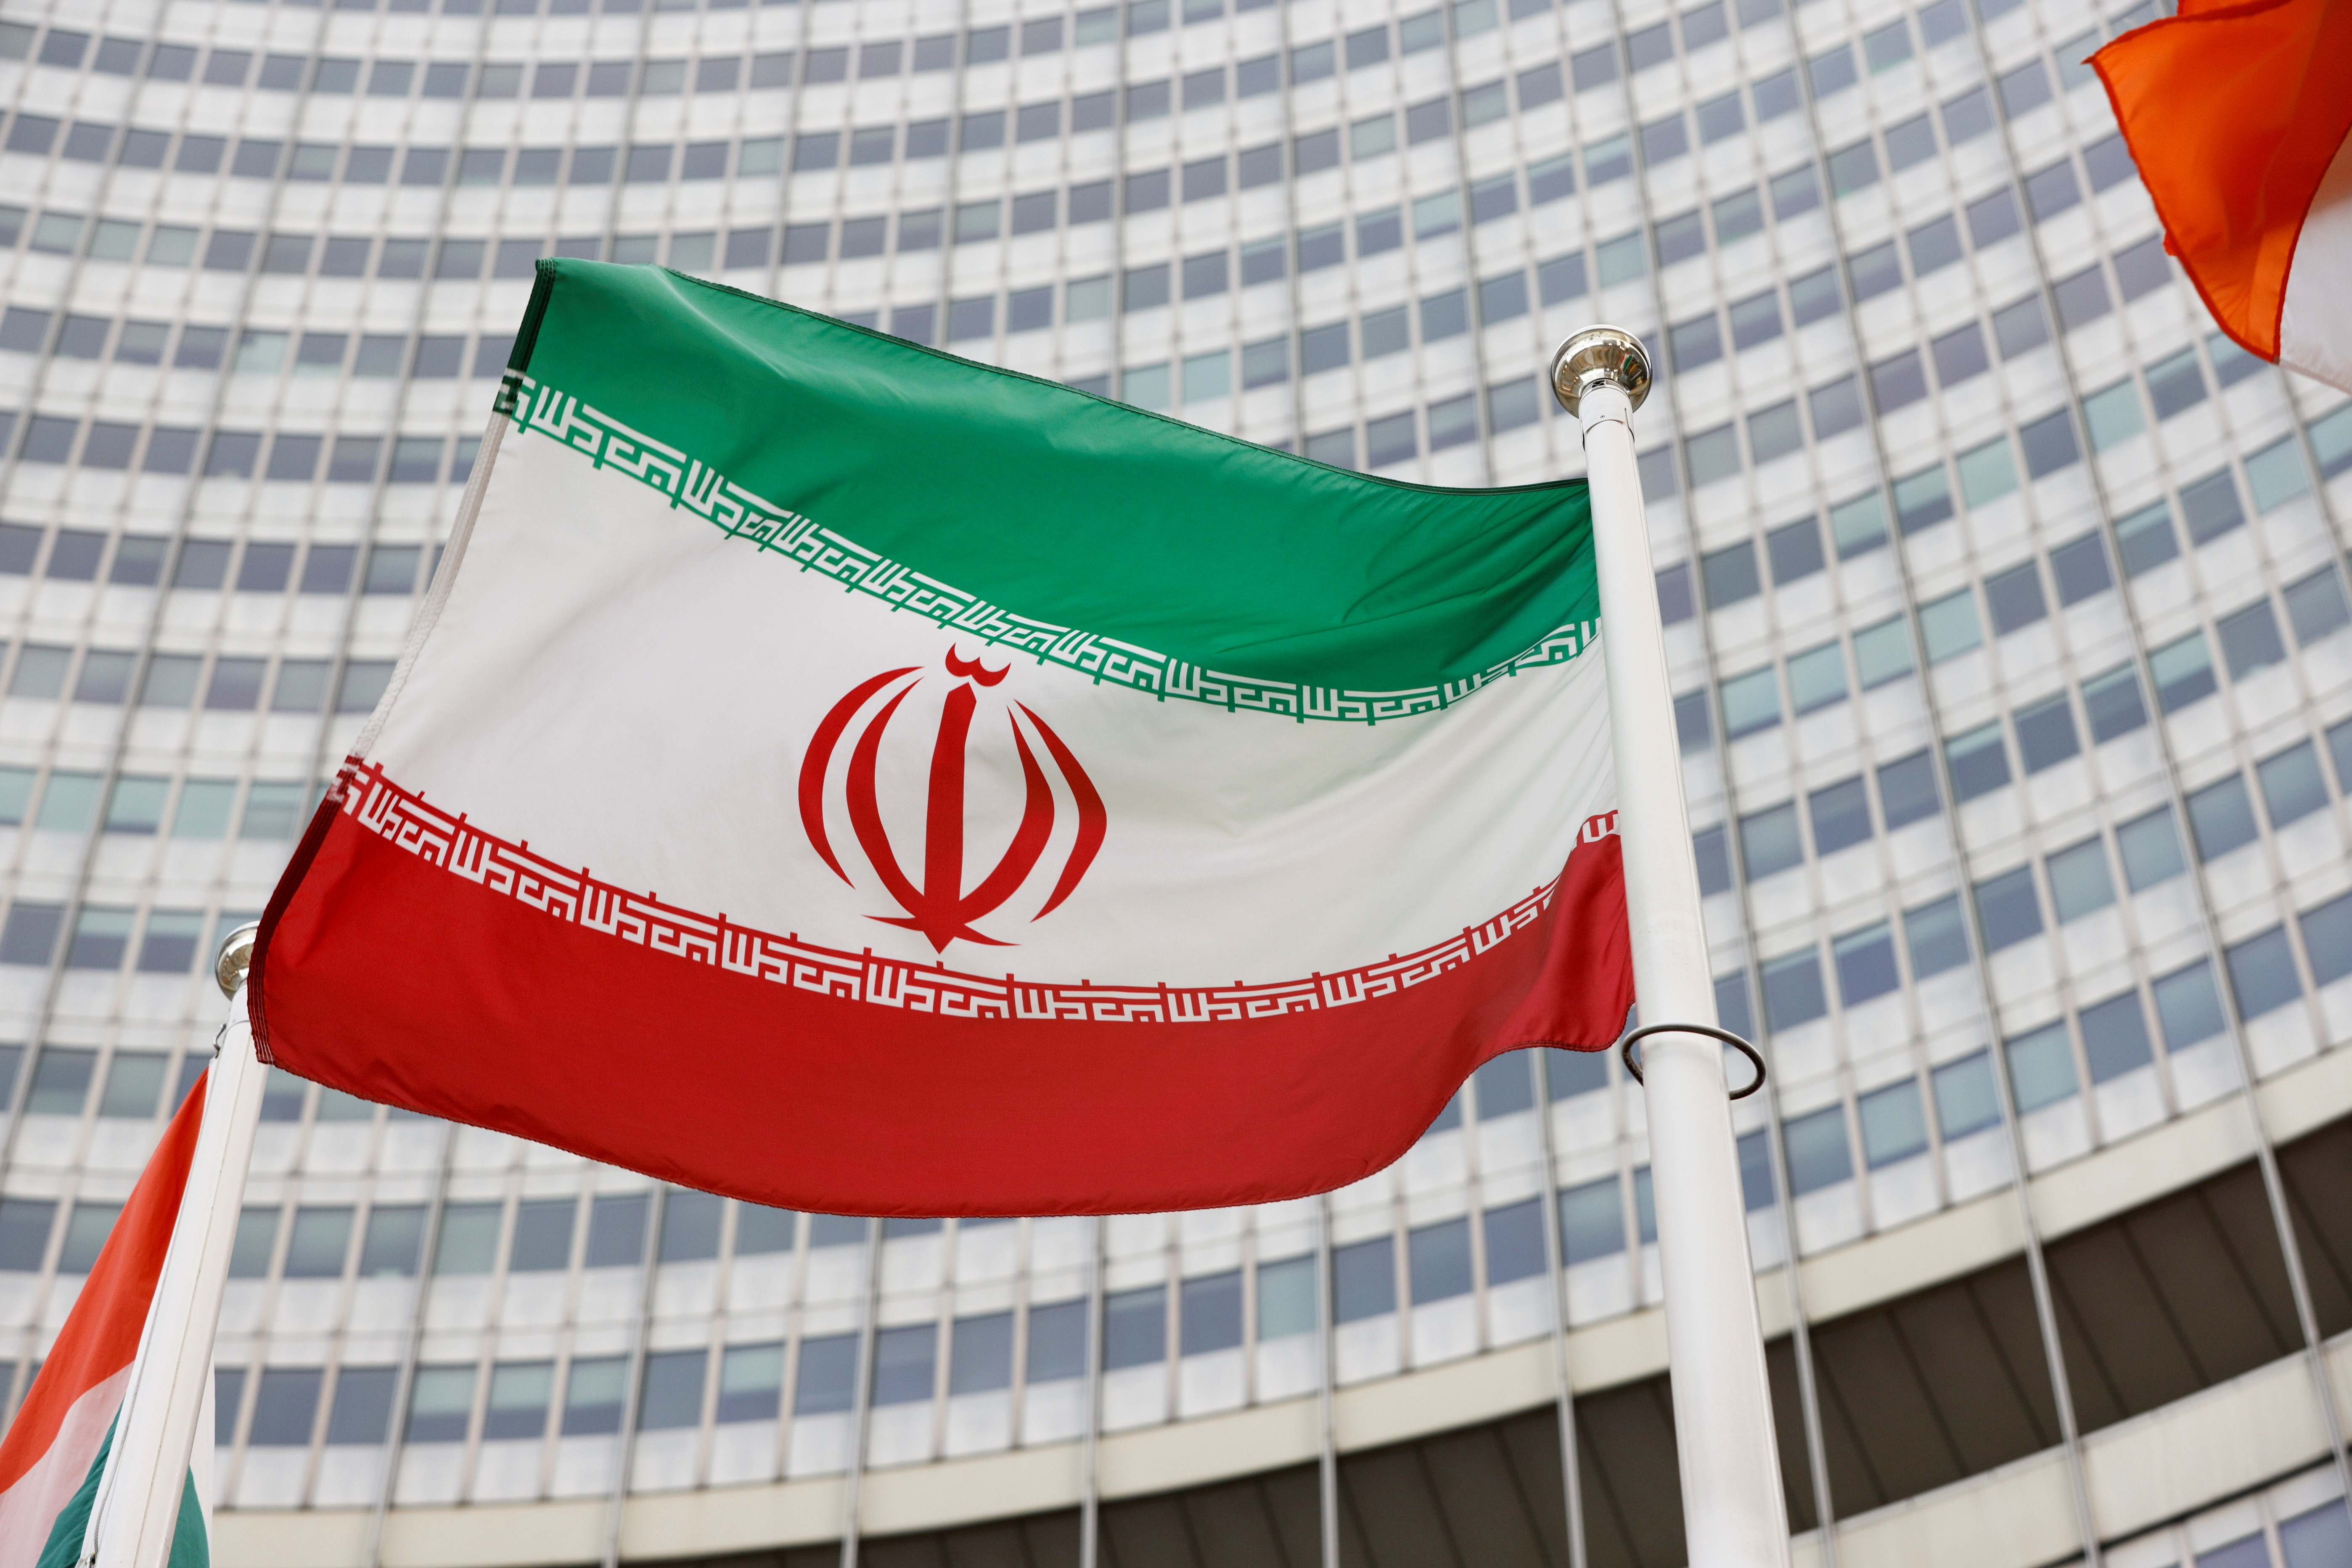 The Iranian flag waves in front of the International Atomic Energy Agency (IAEA) headquarters, amid the coronavirus disease (COVID-19) pandemic, in Vienna, Austria May 23, 2021. REUTERS/Leonhard Foeger/File Photo